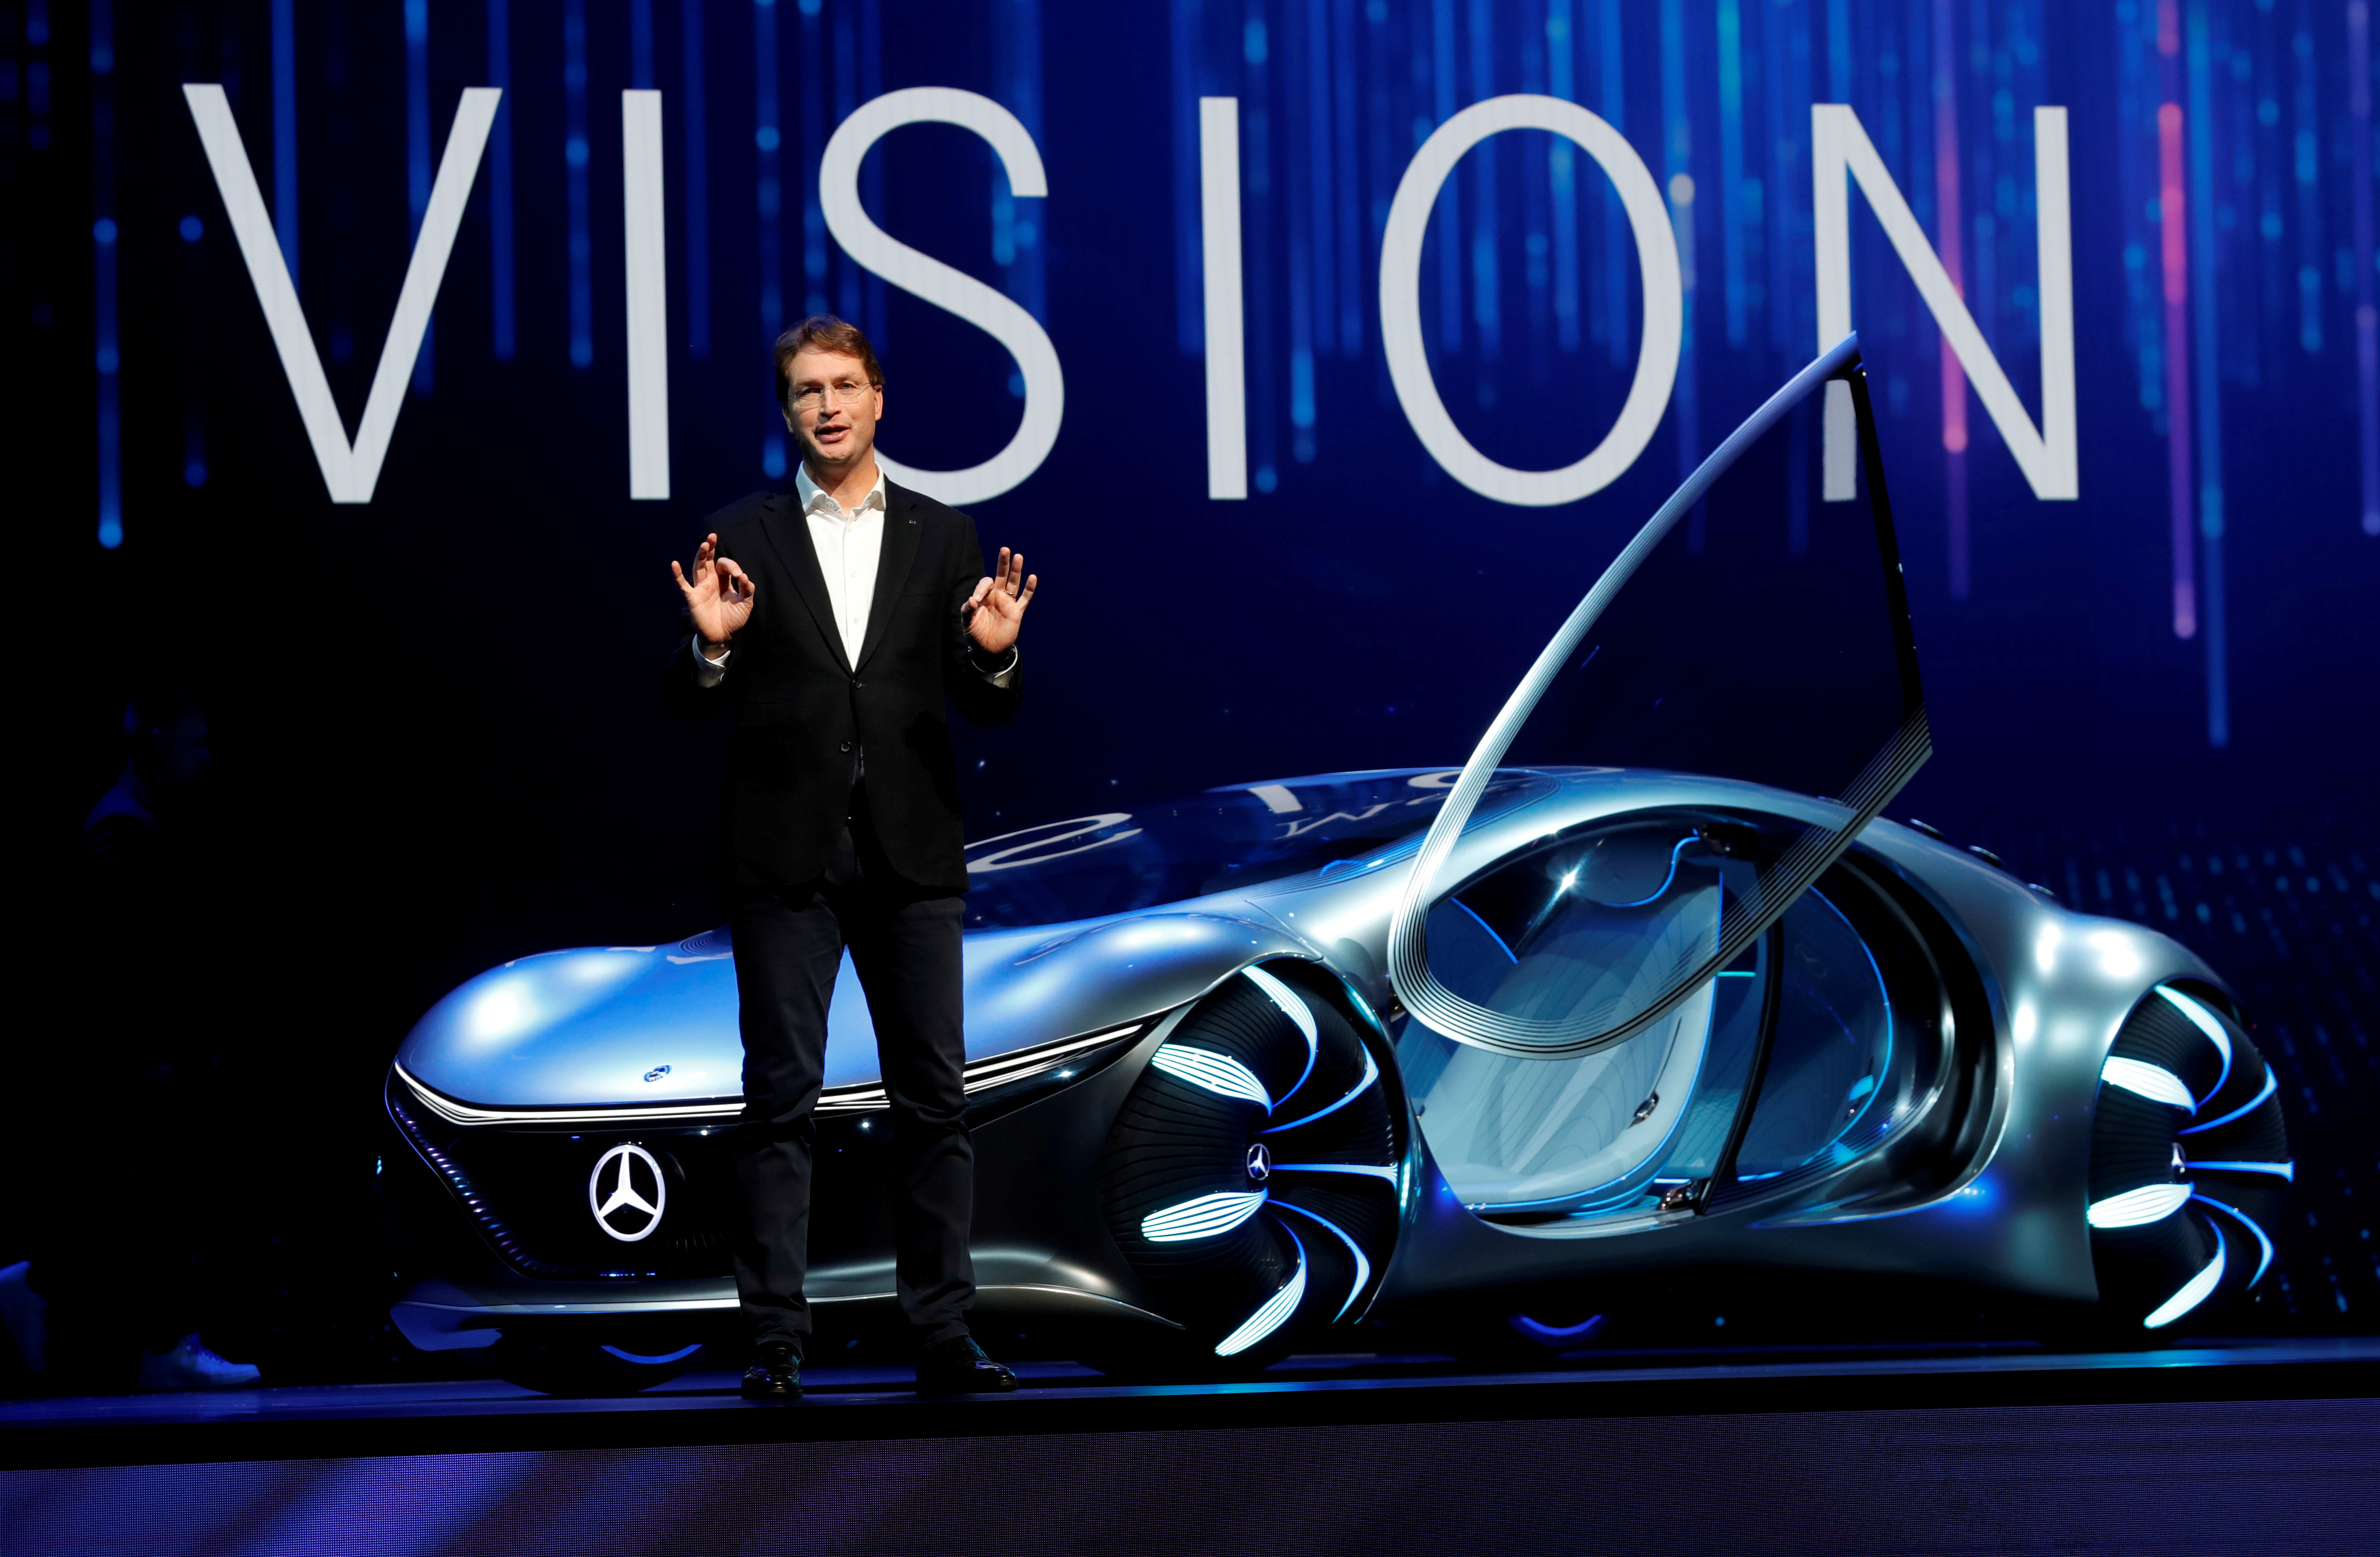 Ola Kallenius, chairman of the board of Daimler AG and Mercedes-Benz AG, unveils the Mercedes-Benz Vision AVTR concept car, inspired by the Avatar movies, at a Daimler keynote address during the 2020 CES in Las Vegas, Nevada, U.S. January 6, 2020. REUTERS/Steve Marcus/File Photo